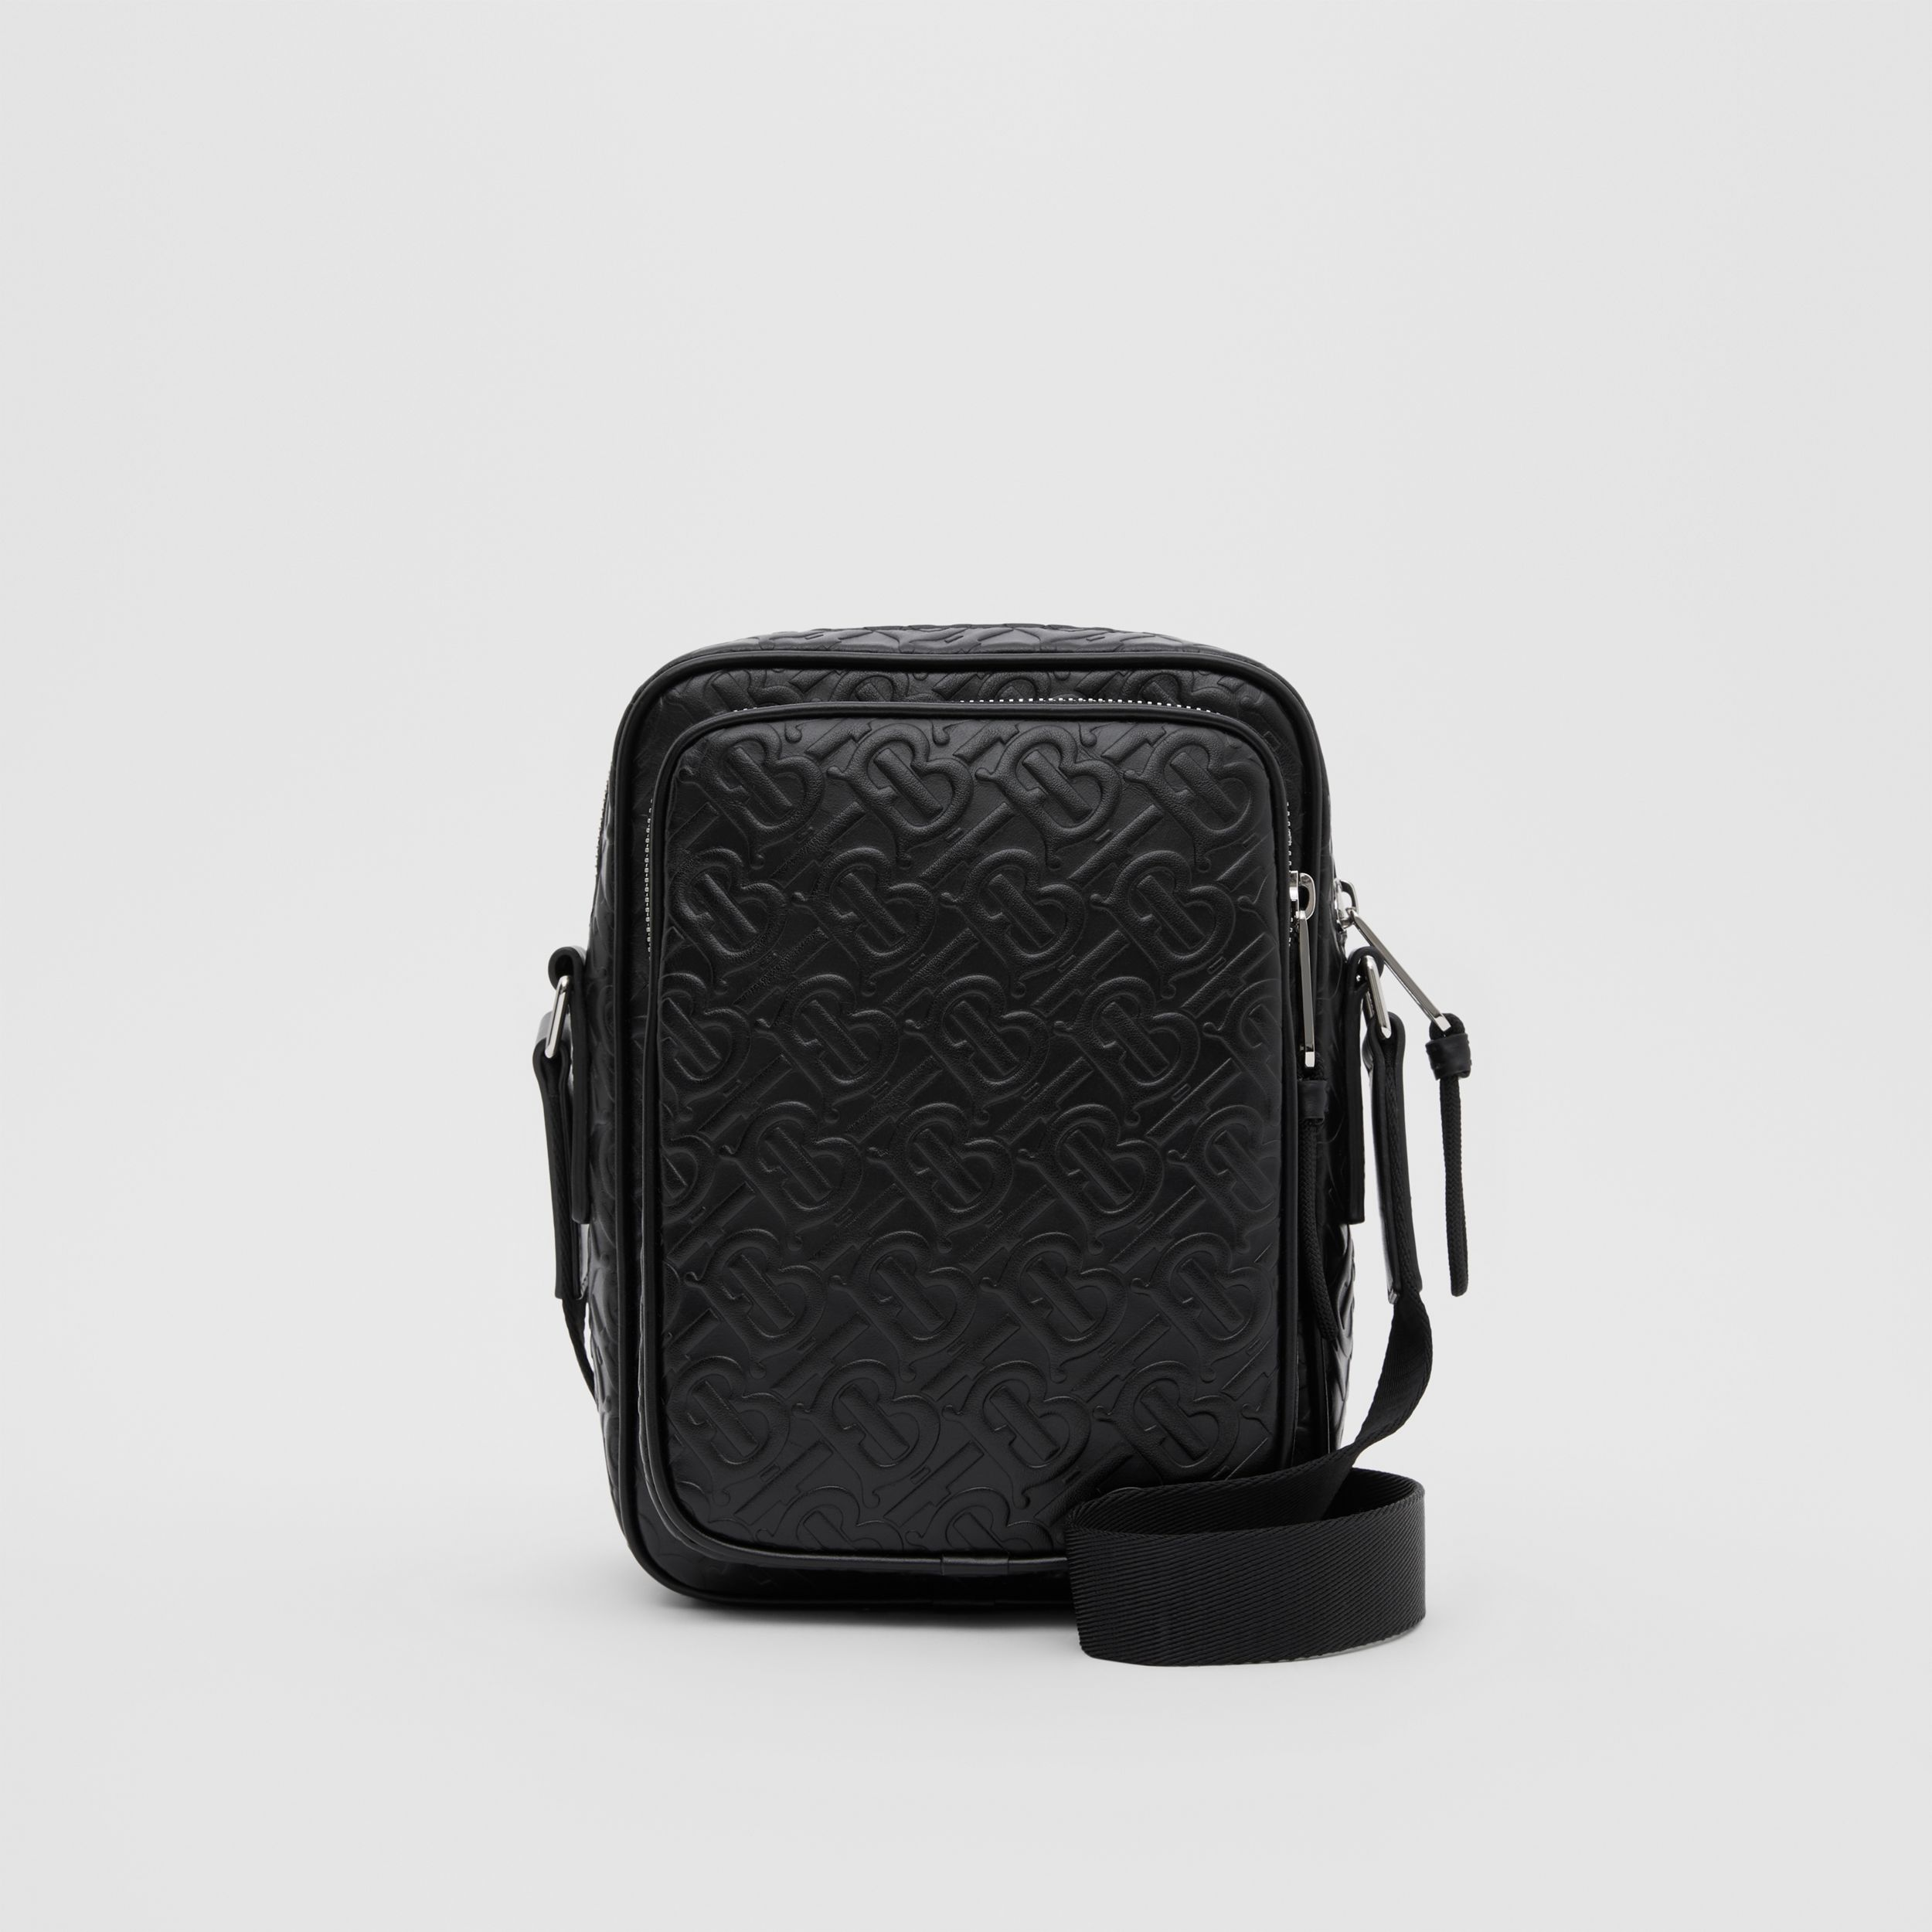 Monogram Leather Crossbody Bag in Black - Men | Burberry Hong Kong S.A.R. - 1